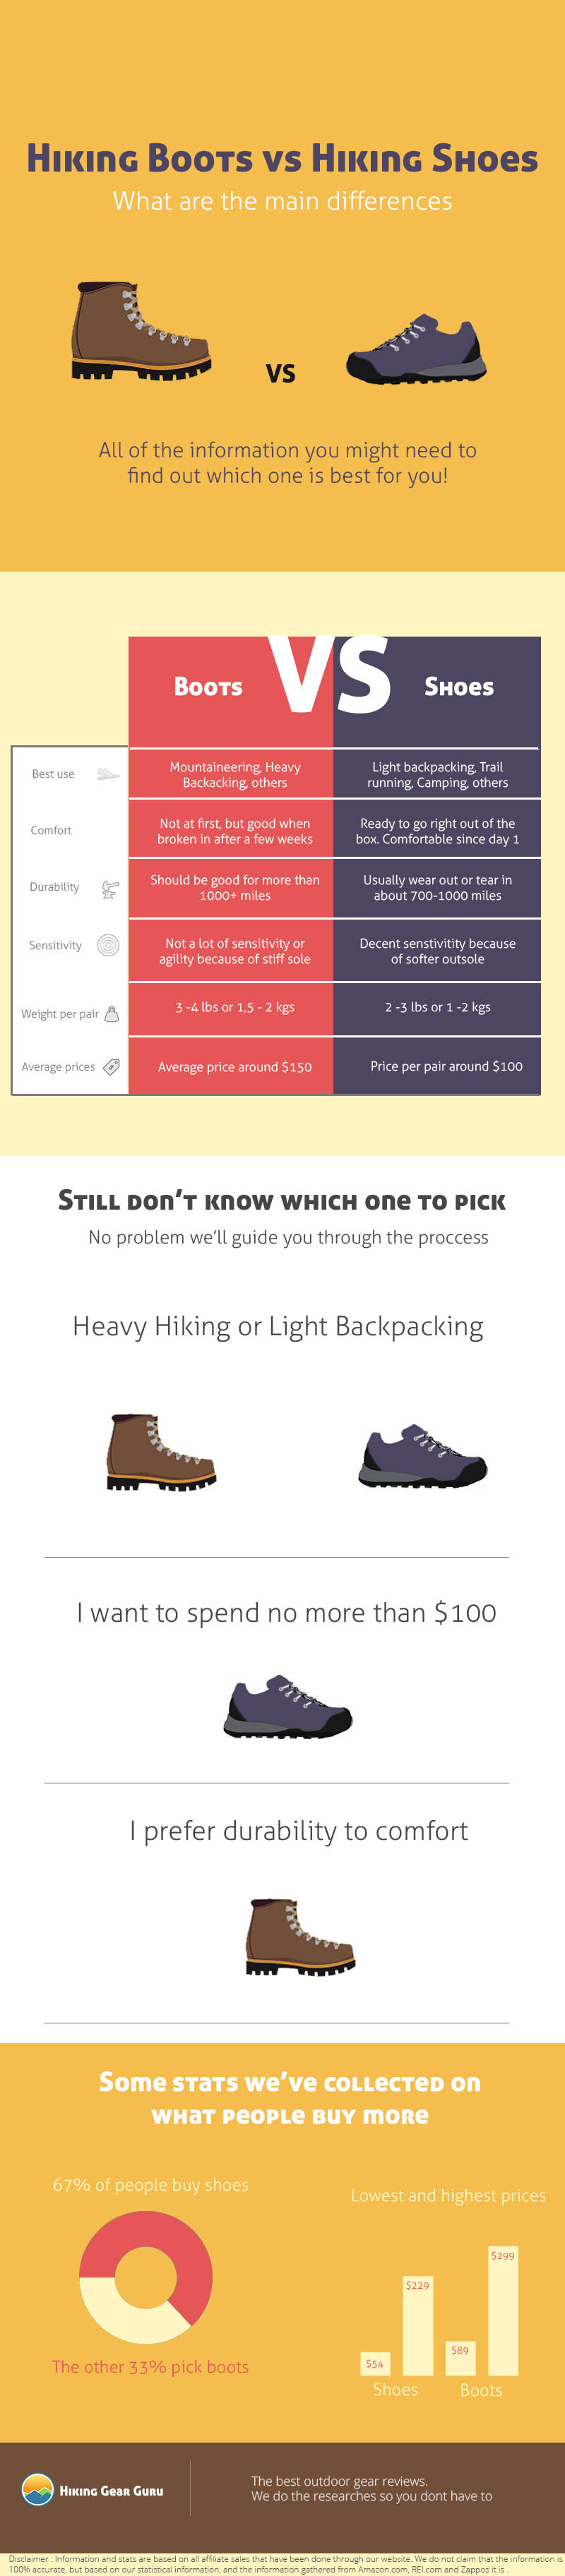 Hiking Boots or Hiking shoes differences and features